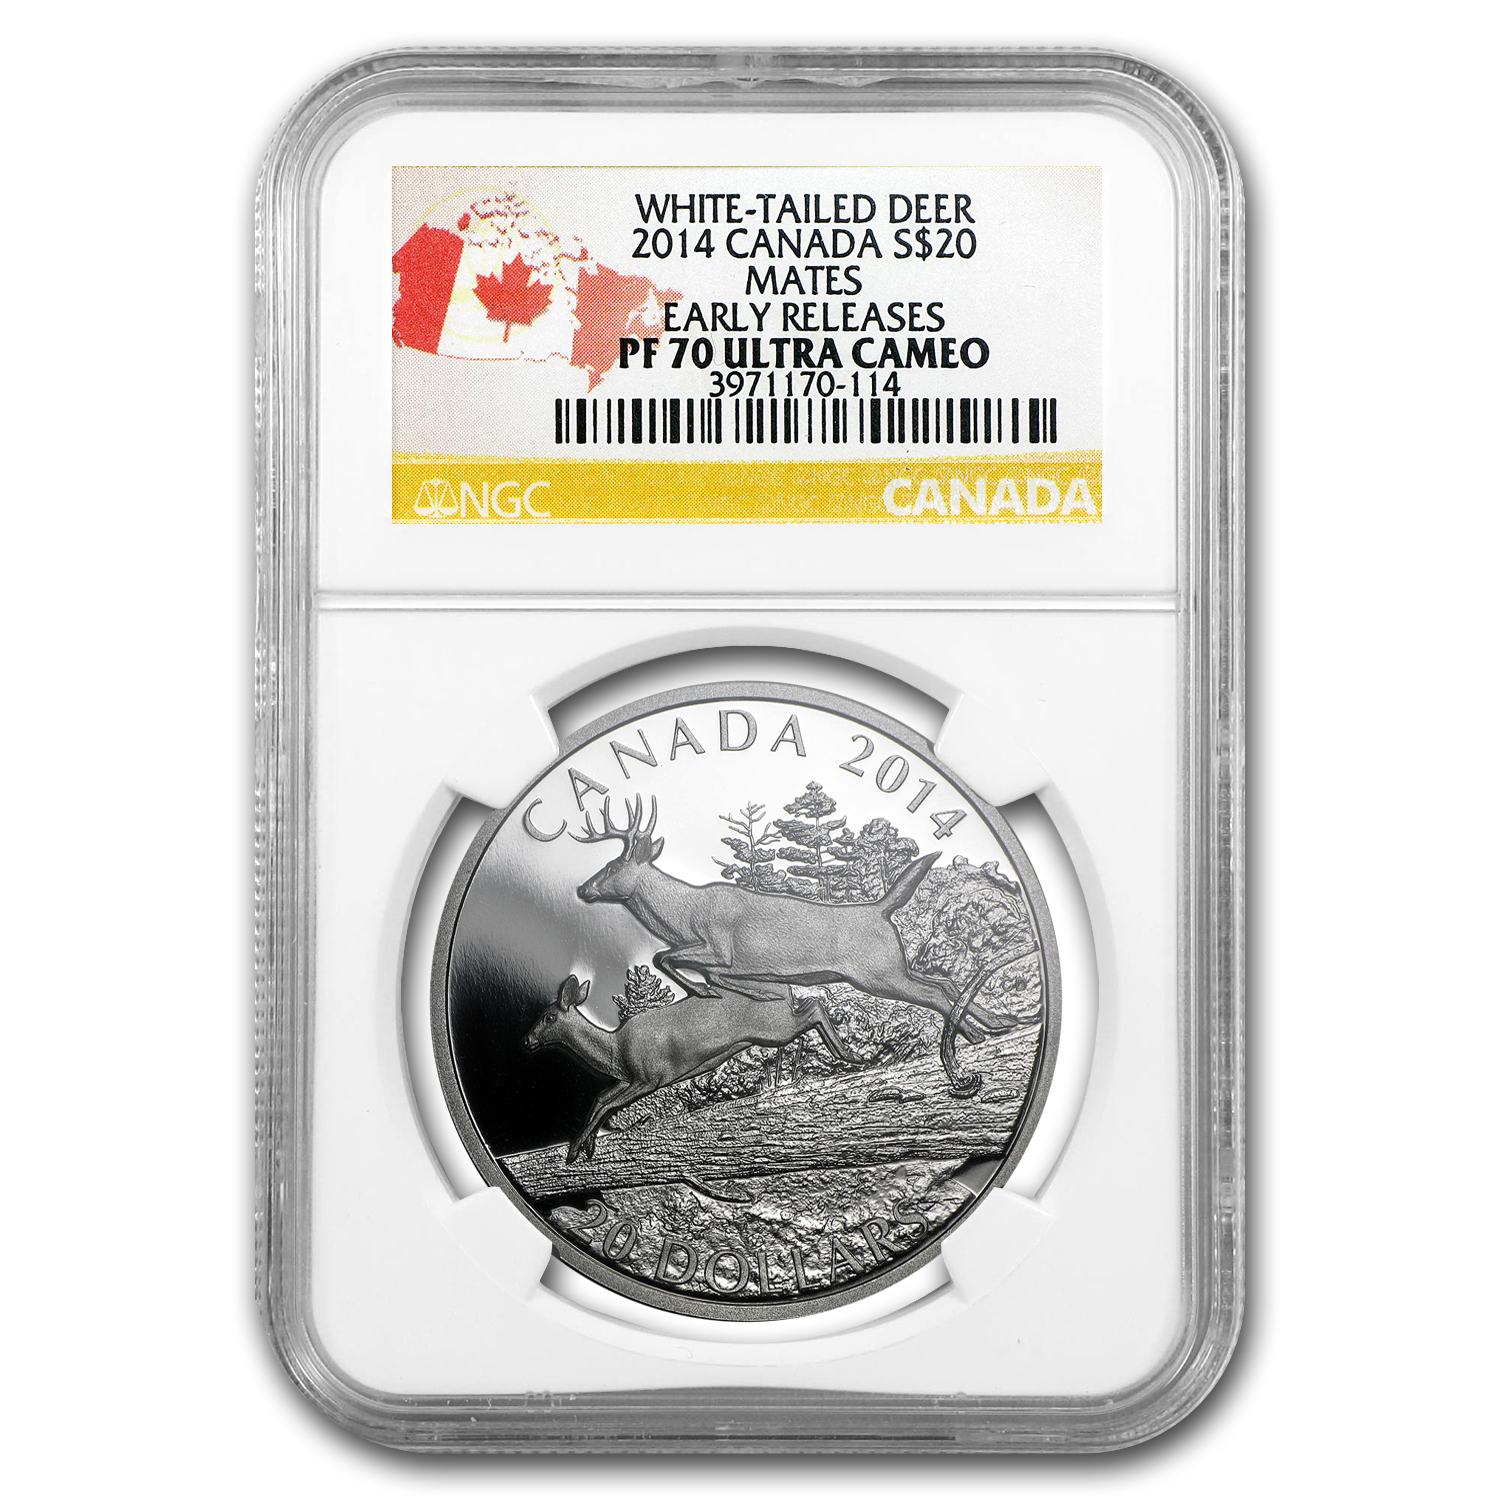 2014 Canada 1 oz Silver $20 White-Tailed Deer PF-70 (Mates)